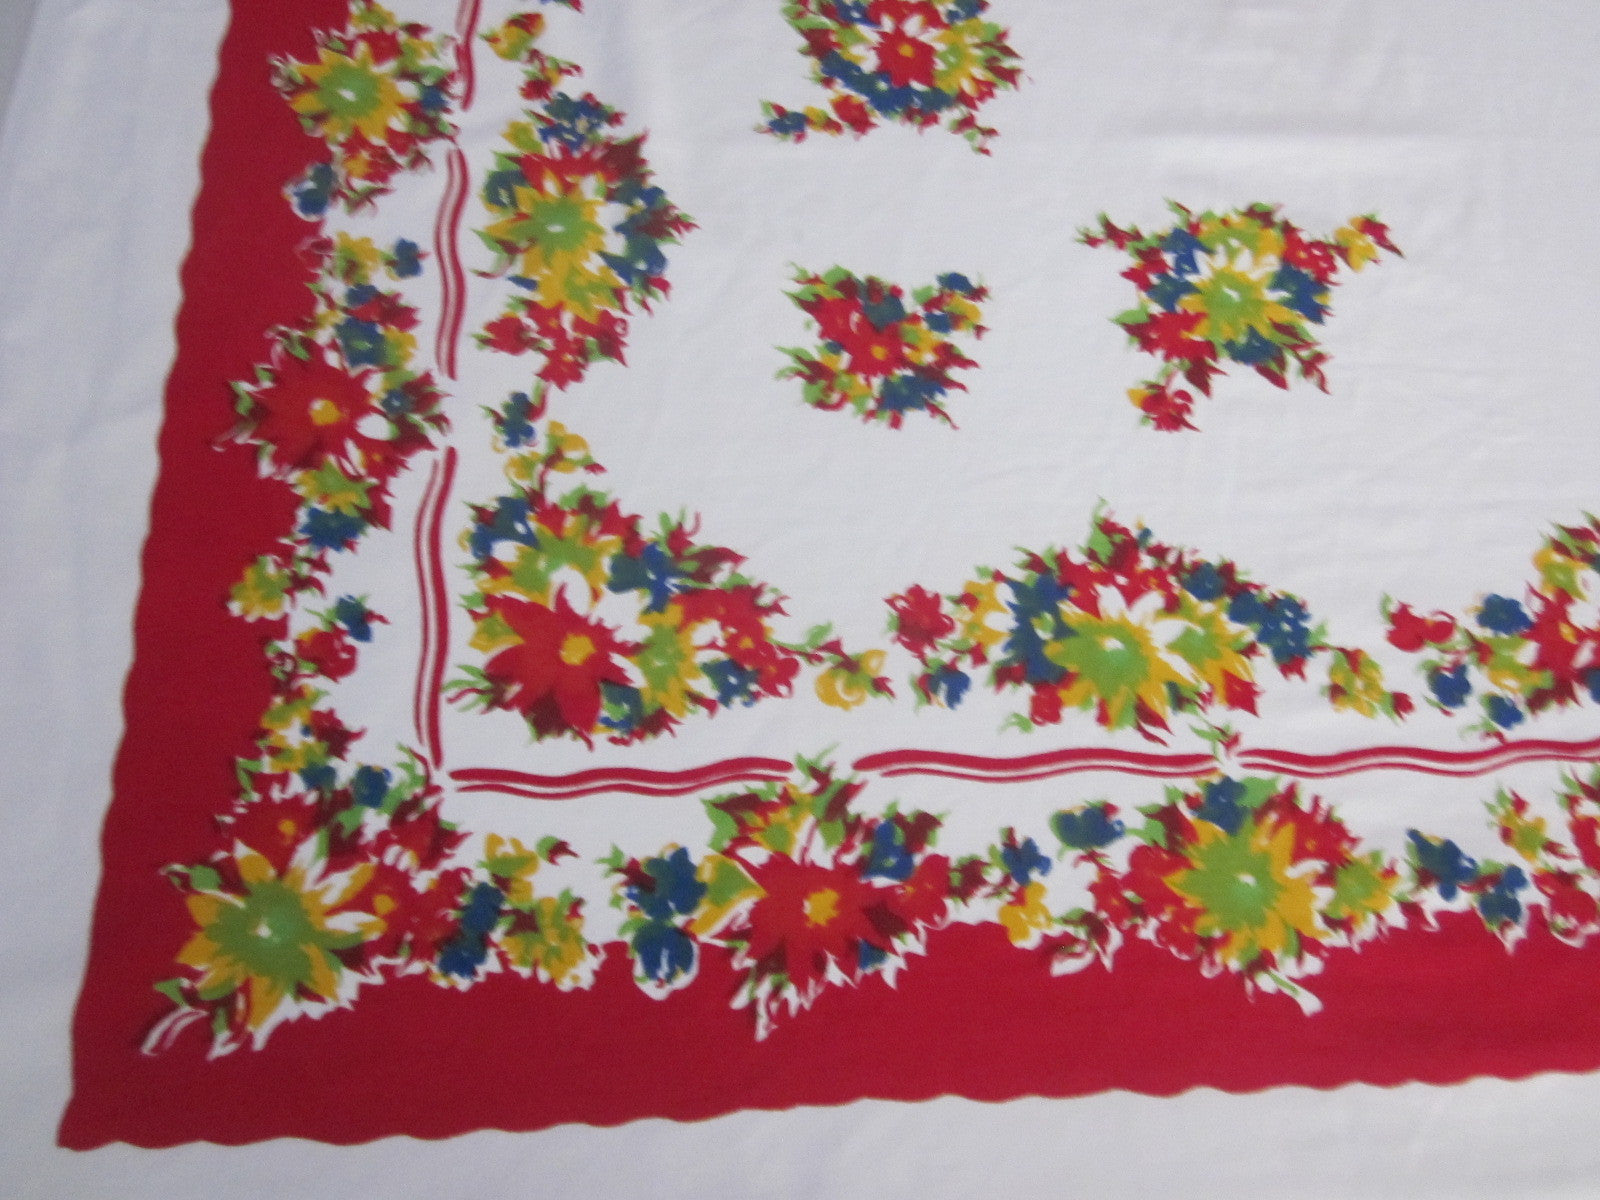 Primary Blue Yellow Floral on Red Vintage Printed Tablecloth (64 X 52)